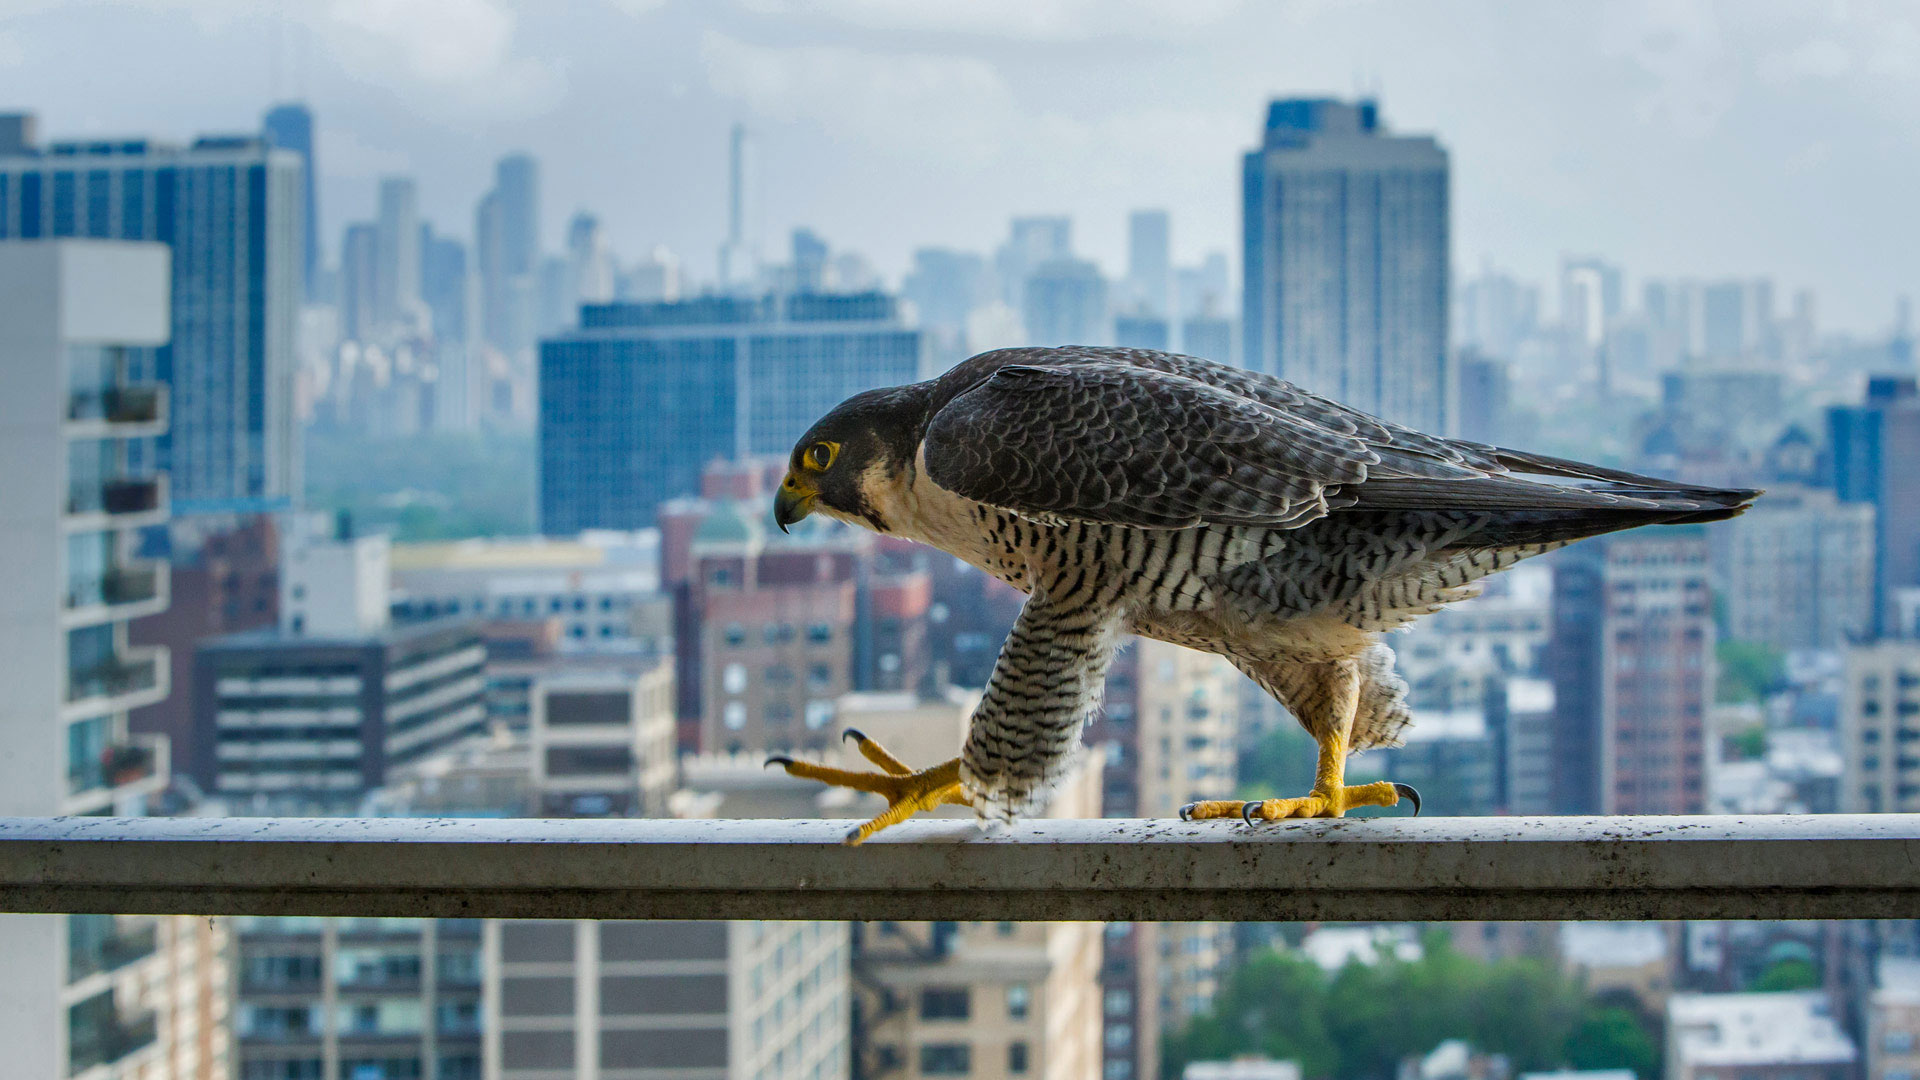 A peregrine falcon surveys the concrete canyons of Chicago (© Luke Massey/Minden Pictures)